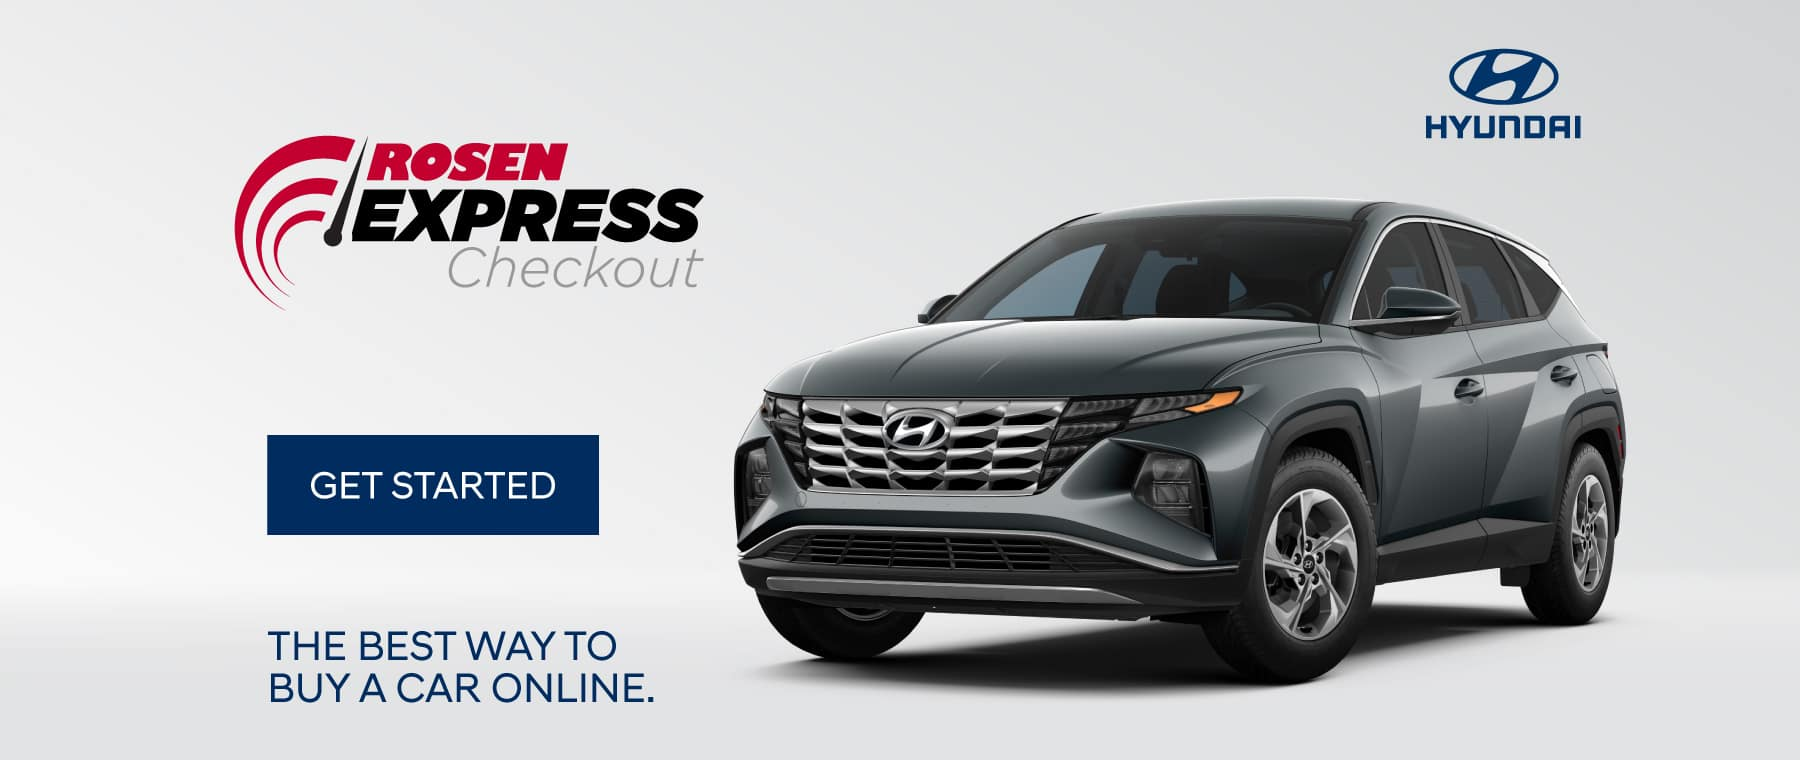 Rosen Express Checkout The Best Way to Buy A car Online